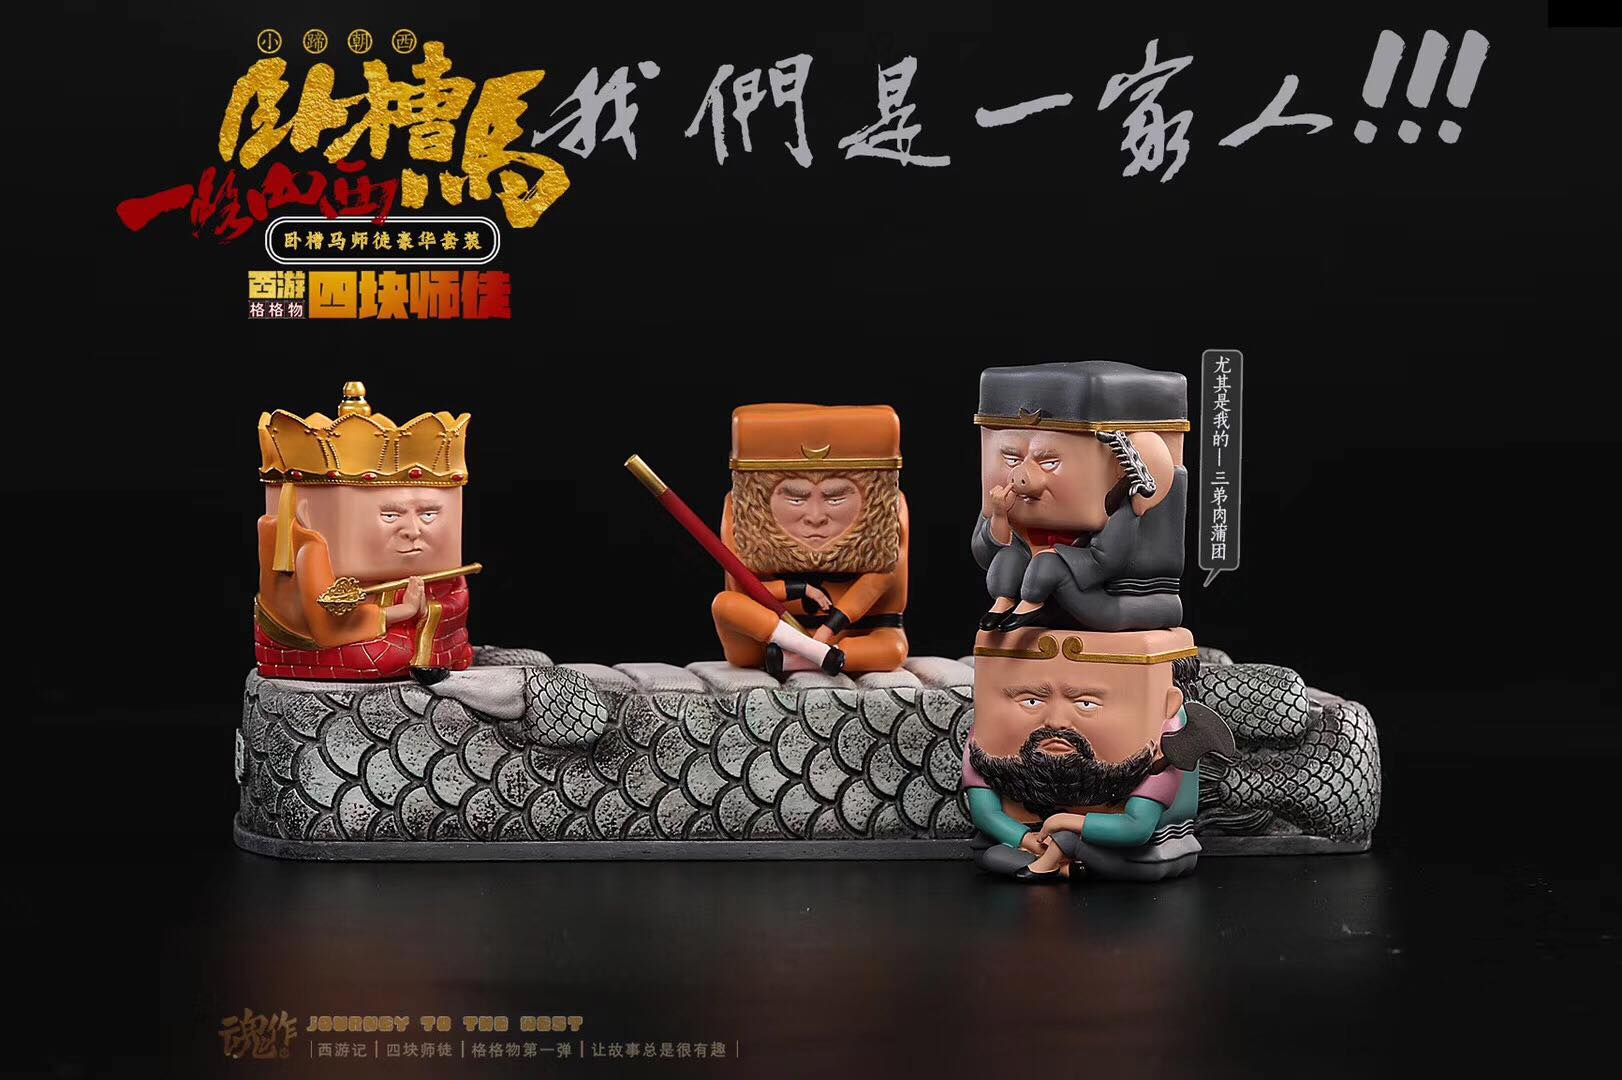 Journey to the West SET